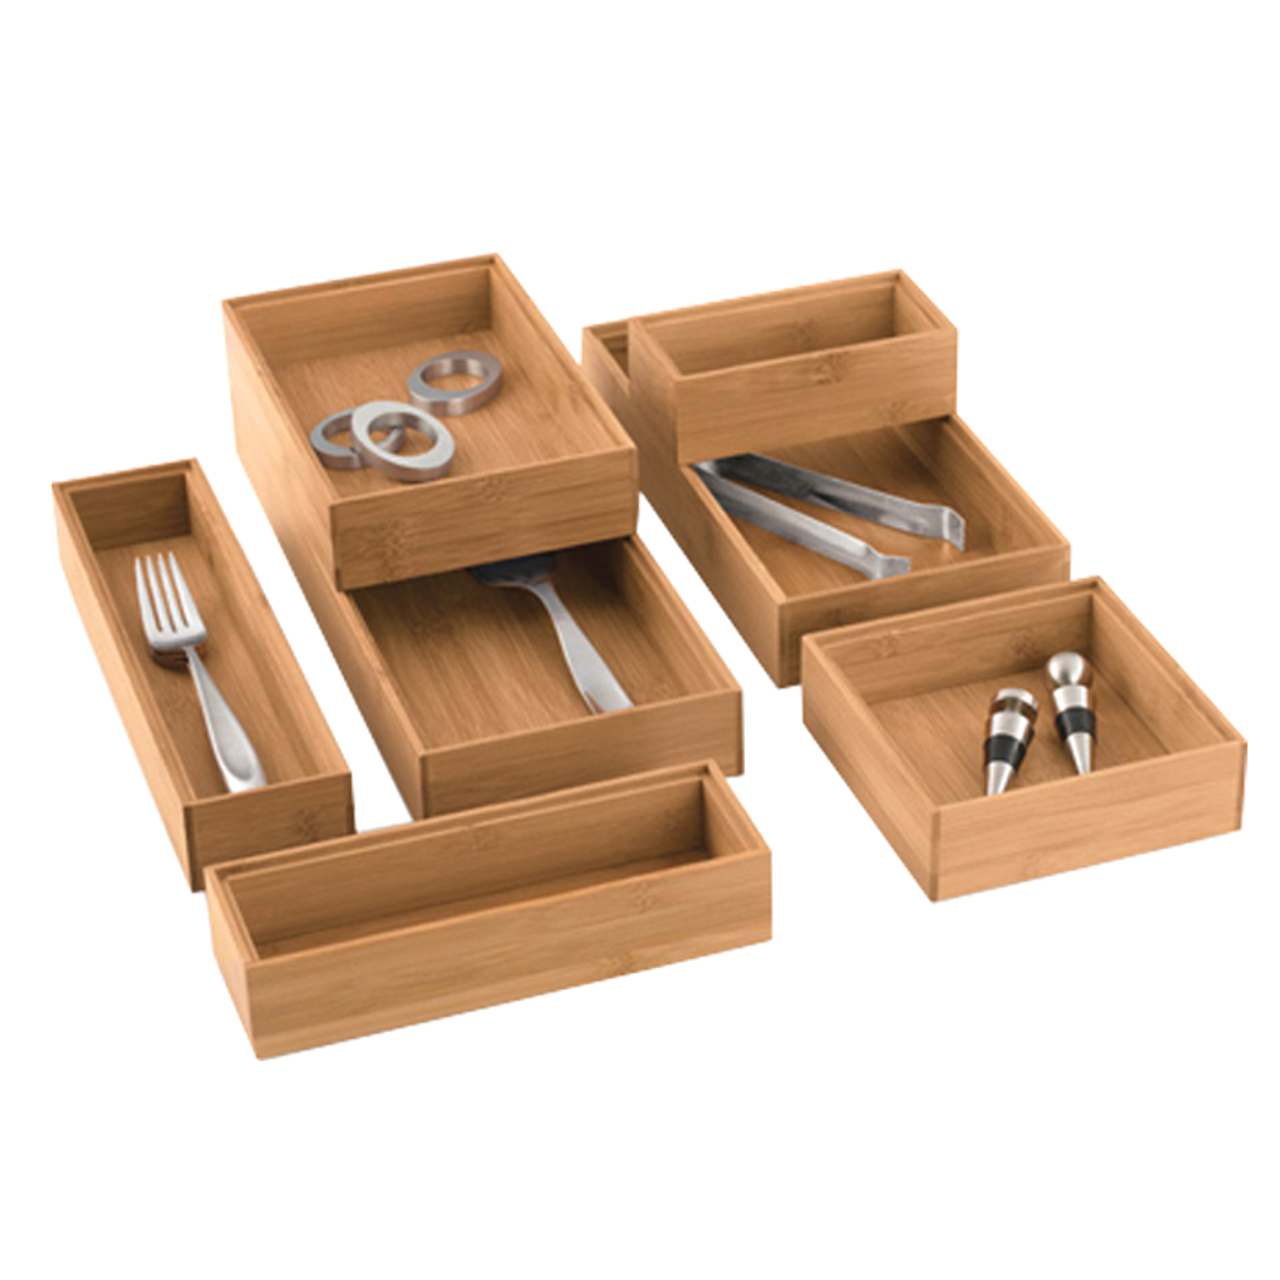 Bamboo Drawer Organizers Solutions Your Organized Living Store